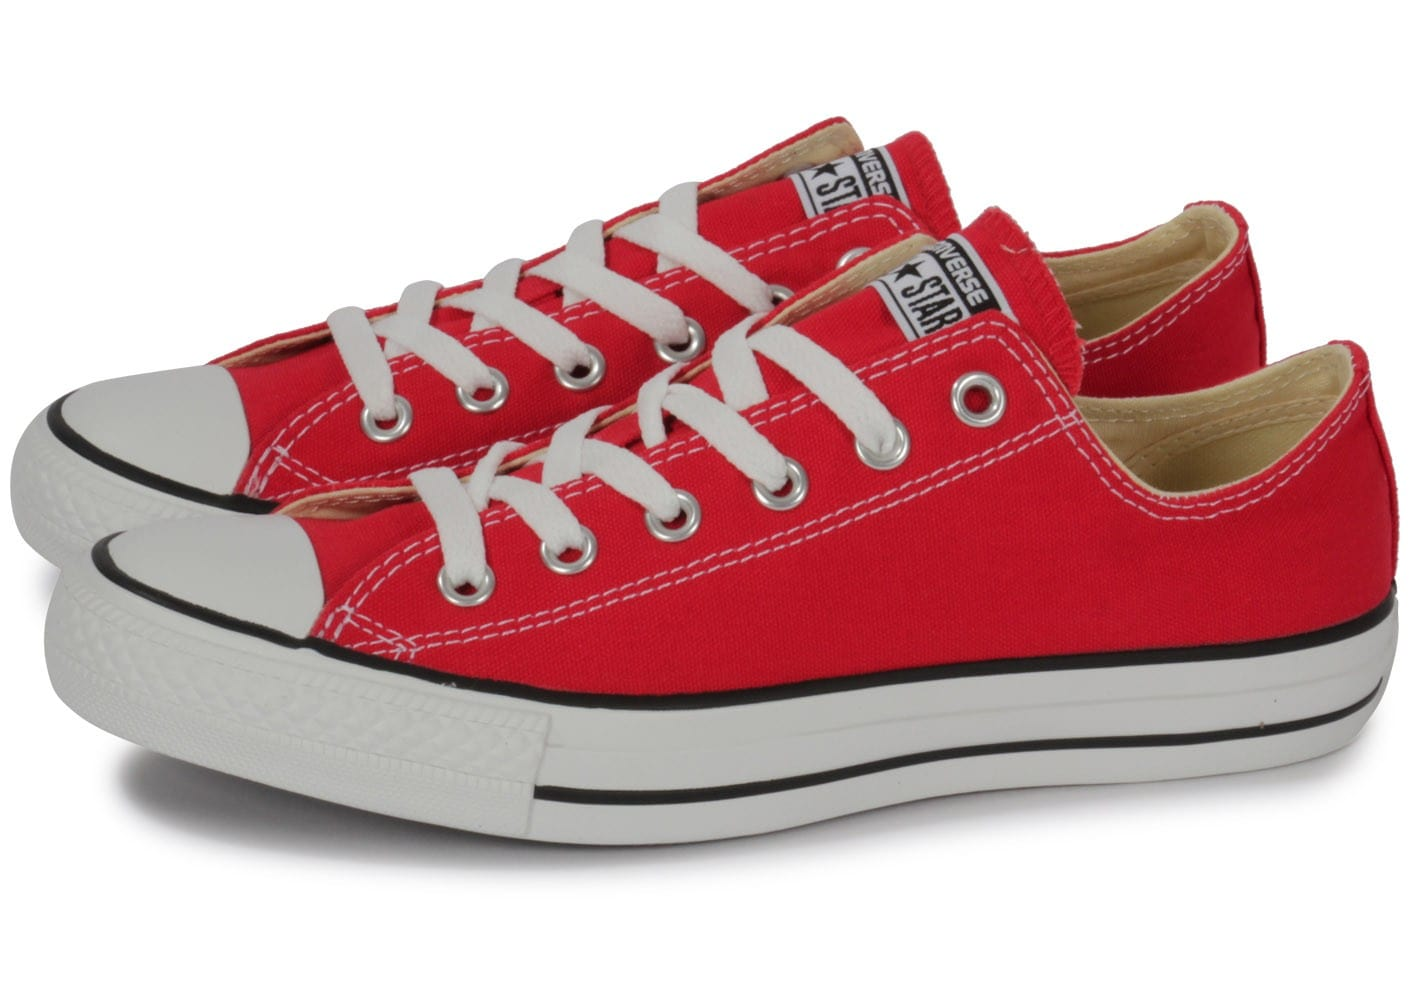 760661cd5ec6b all star converse rouge all star converse rouge ...